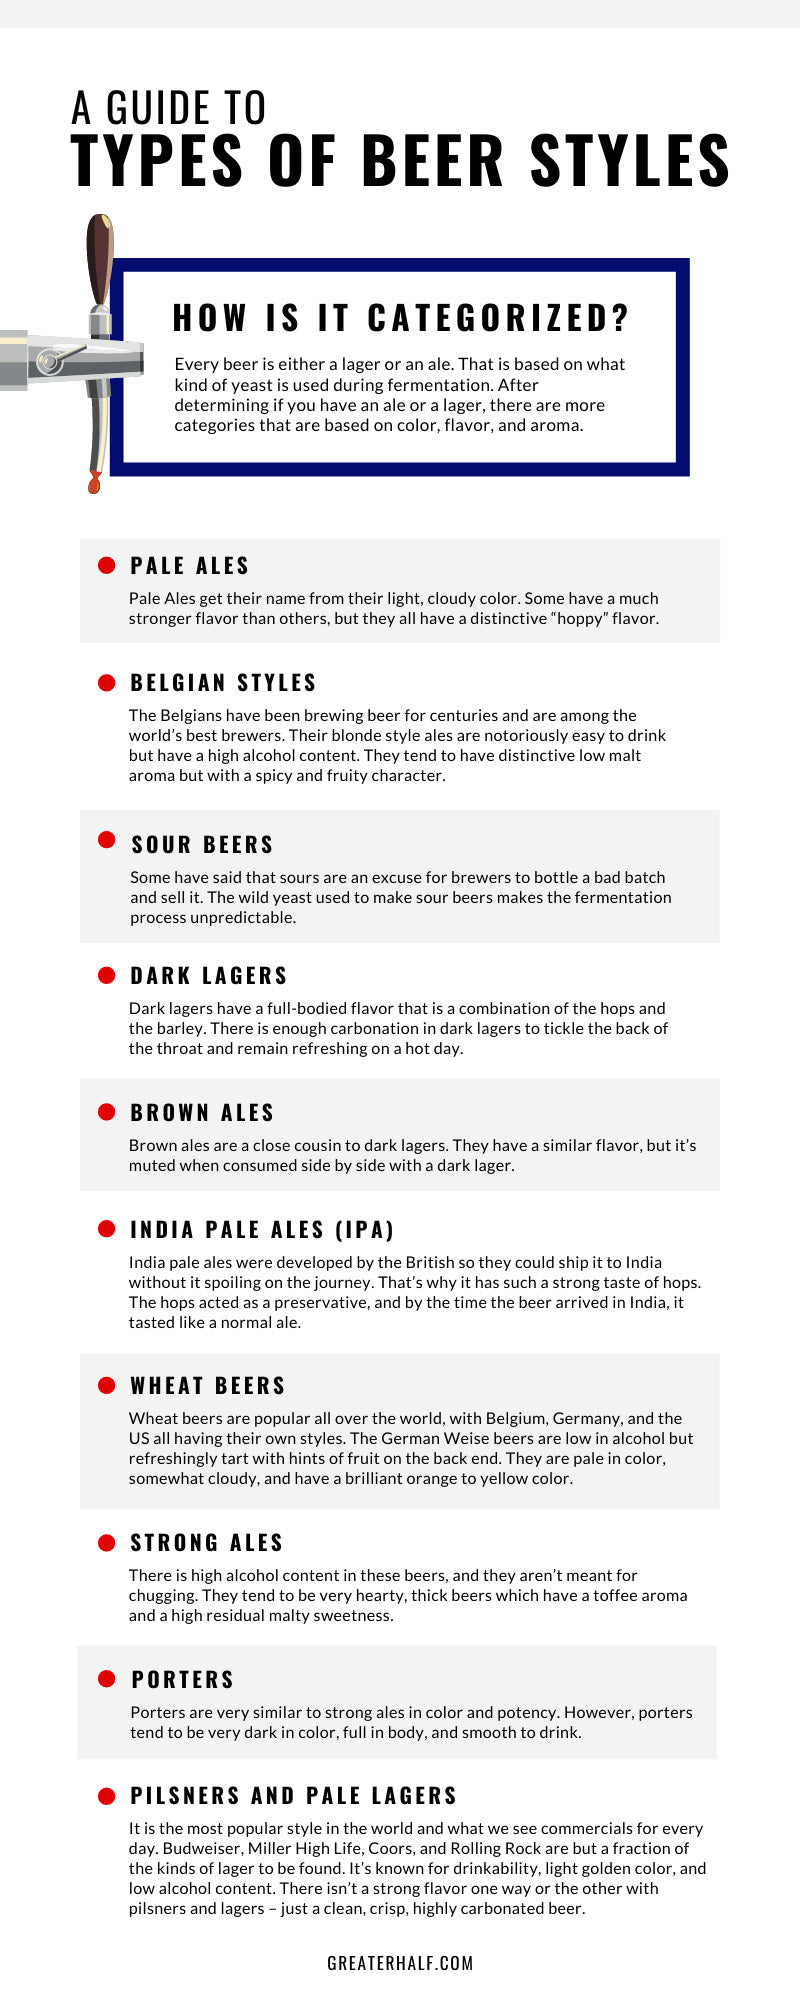 A Guide to Types of Beer Styles